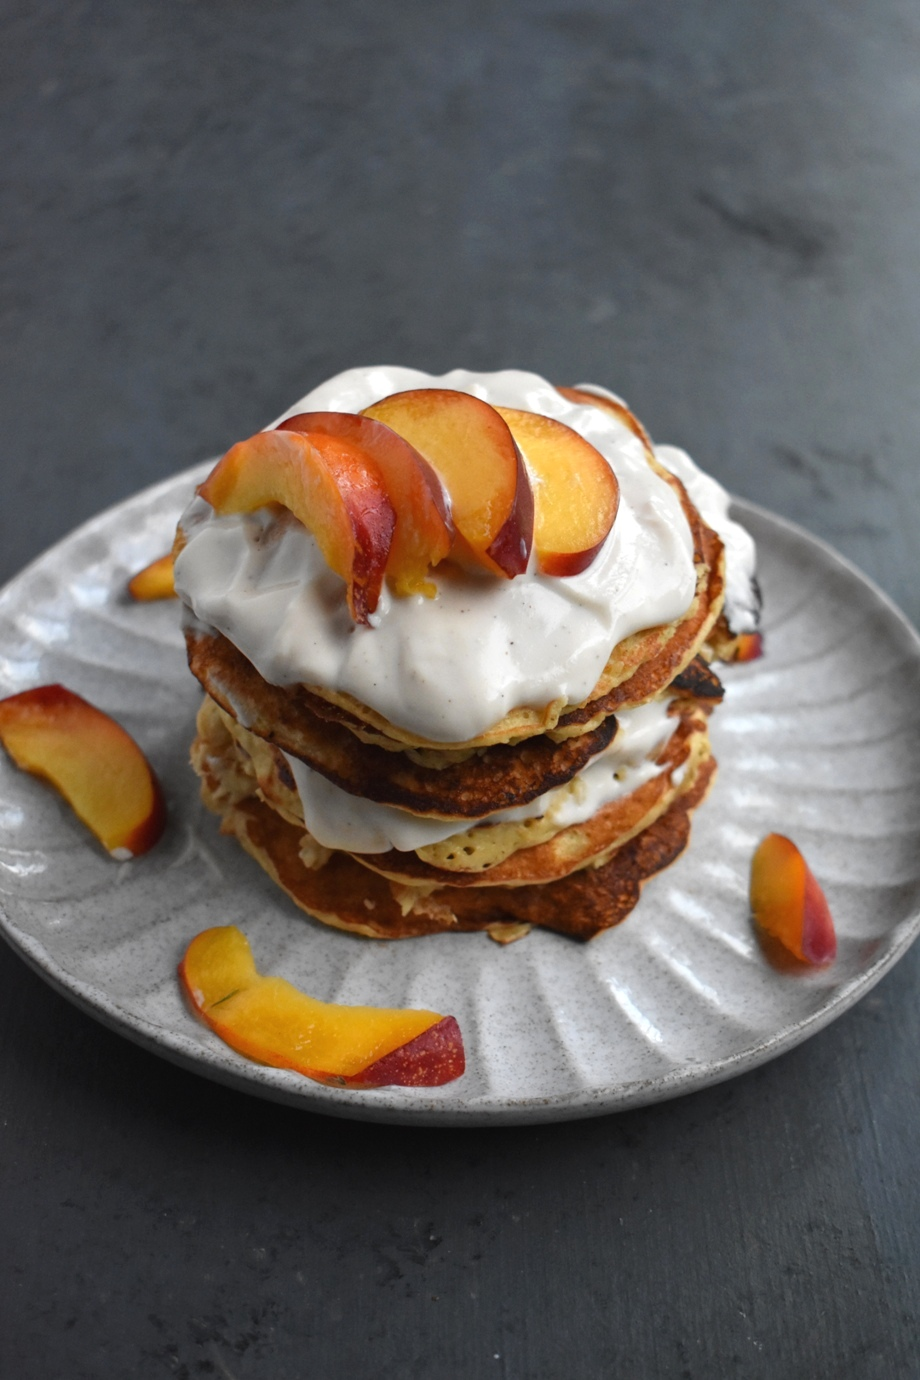 Whole-Grain Peaches and Cream Pancakes are dairy-free, whole-grain and full of delicious juicy peaches and cream. They make the perfect breakfast and a great for meal prep! www.nutritionistreviews.com